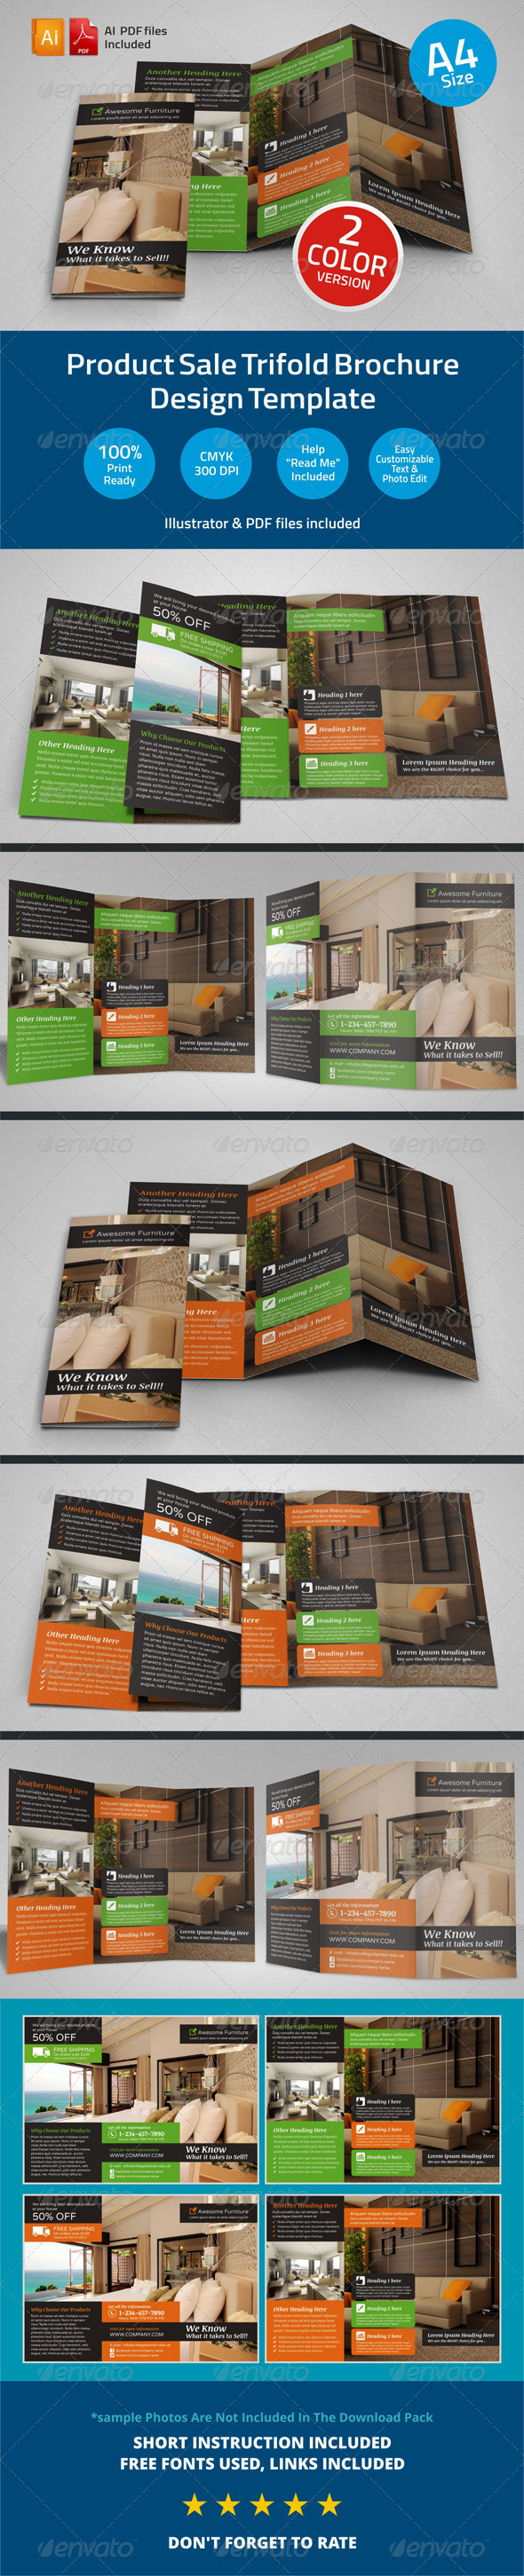 Product Sale Trifold Brochure Template - Catalogs Brochures